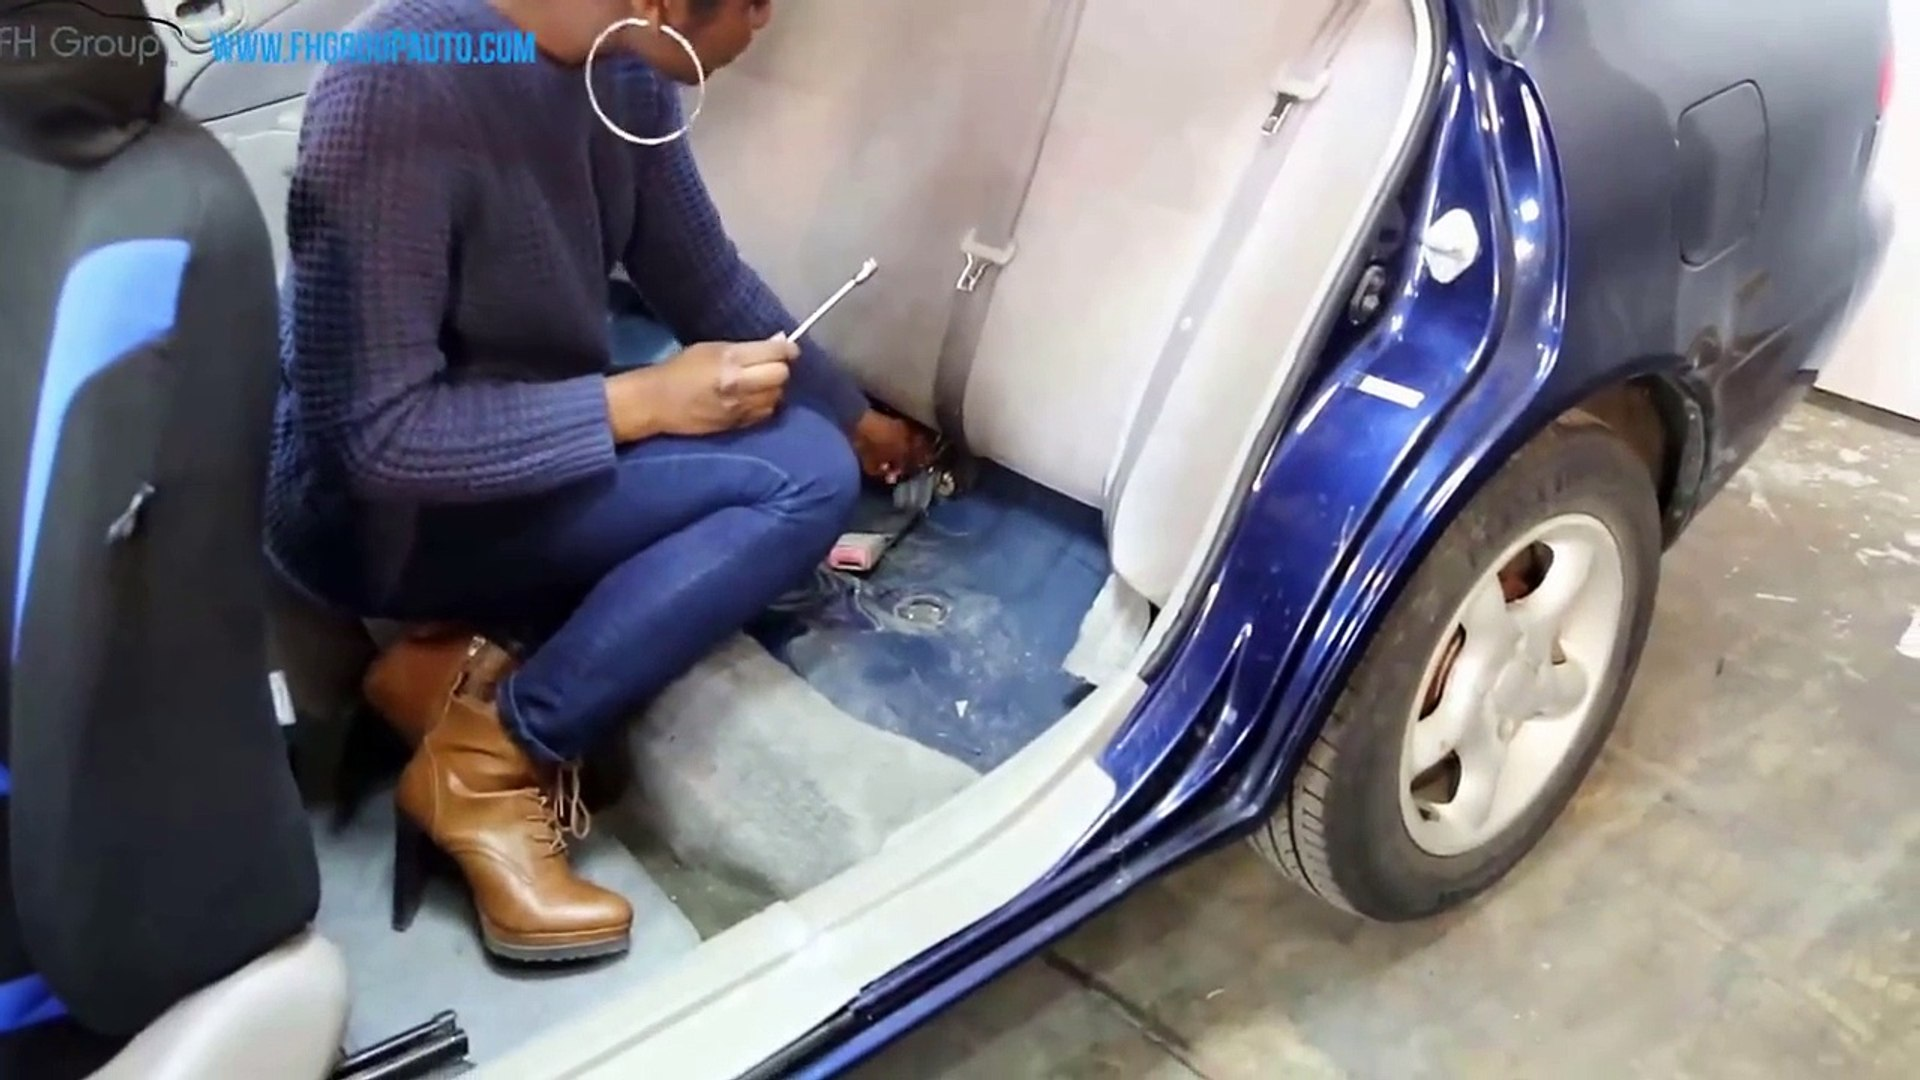 Solid Bench Seat Covers Installation - FH Group Auto ®